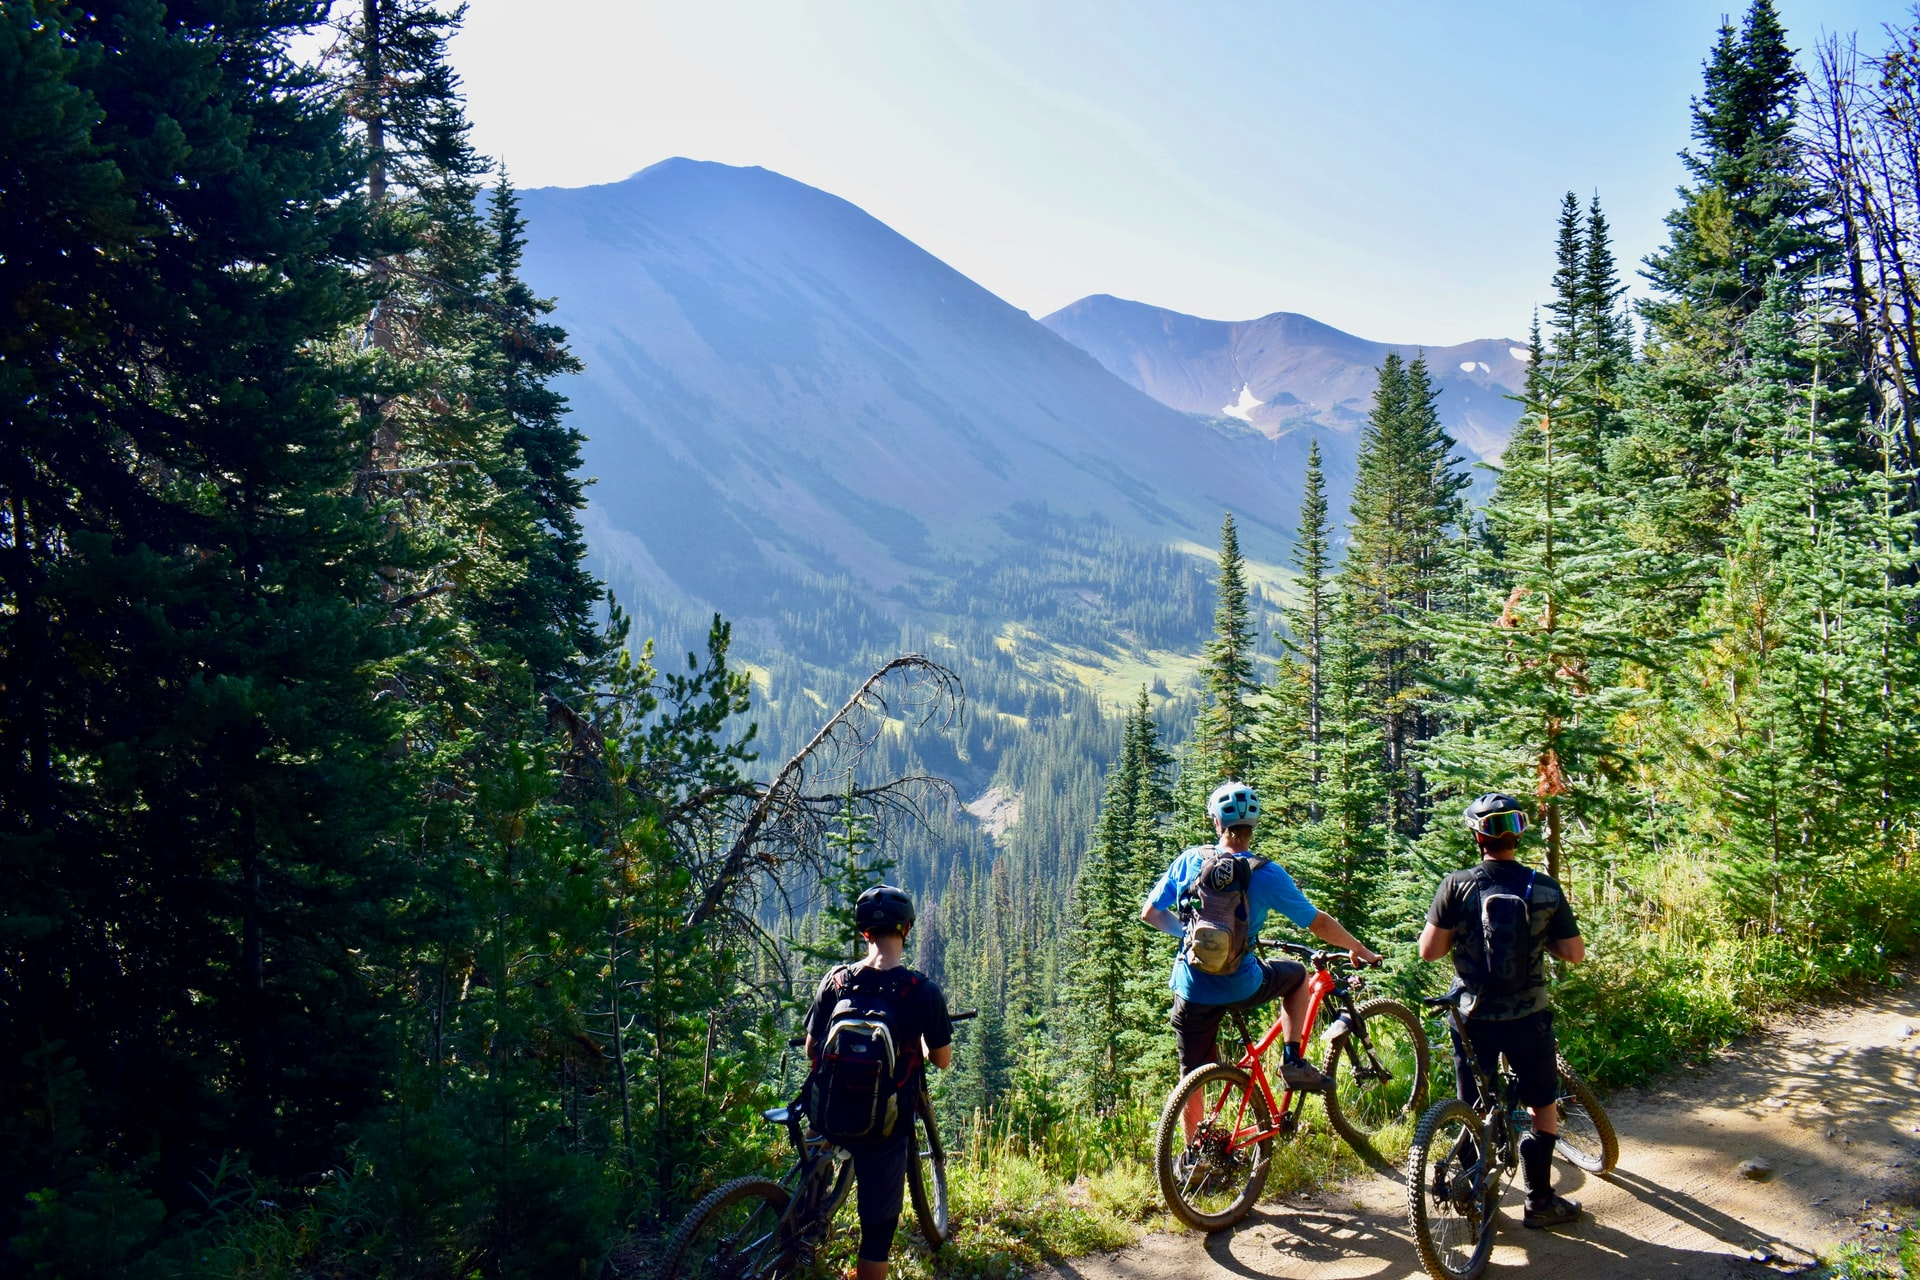 three cyclists with biking backpacks riding on bicycles during daytime in Canadian mountains